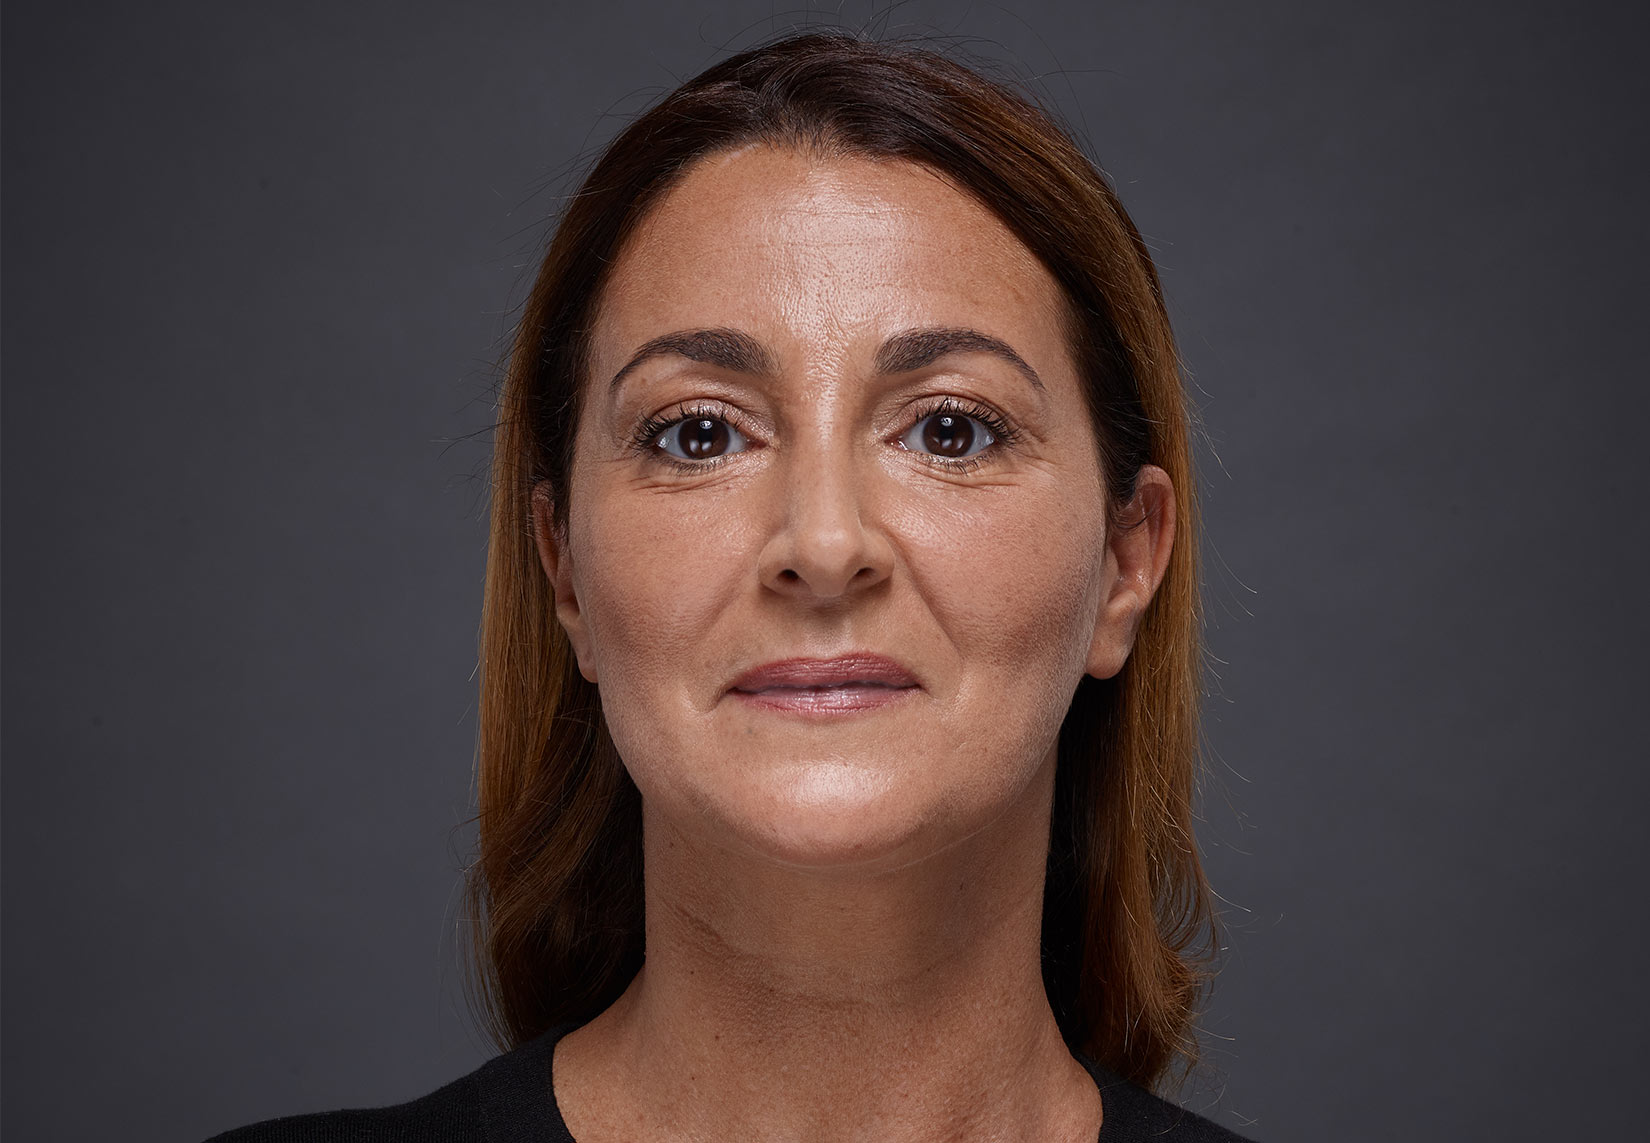 Woman face with brown eyes and brown hairs on grey background | Fillmed